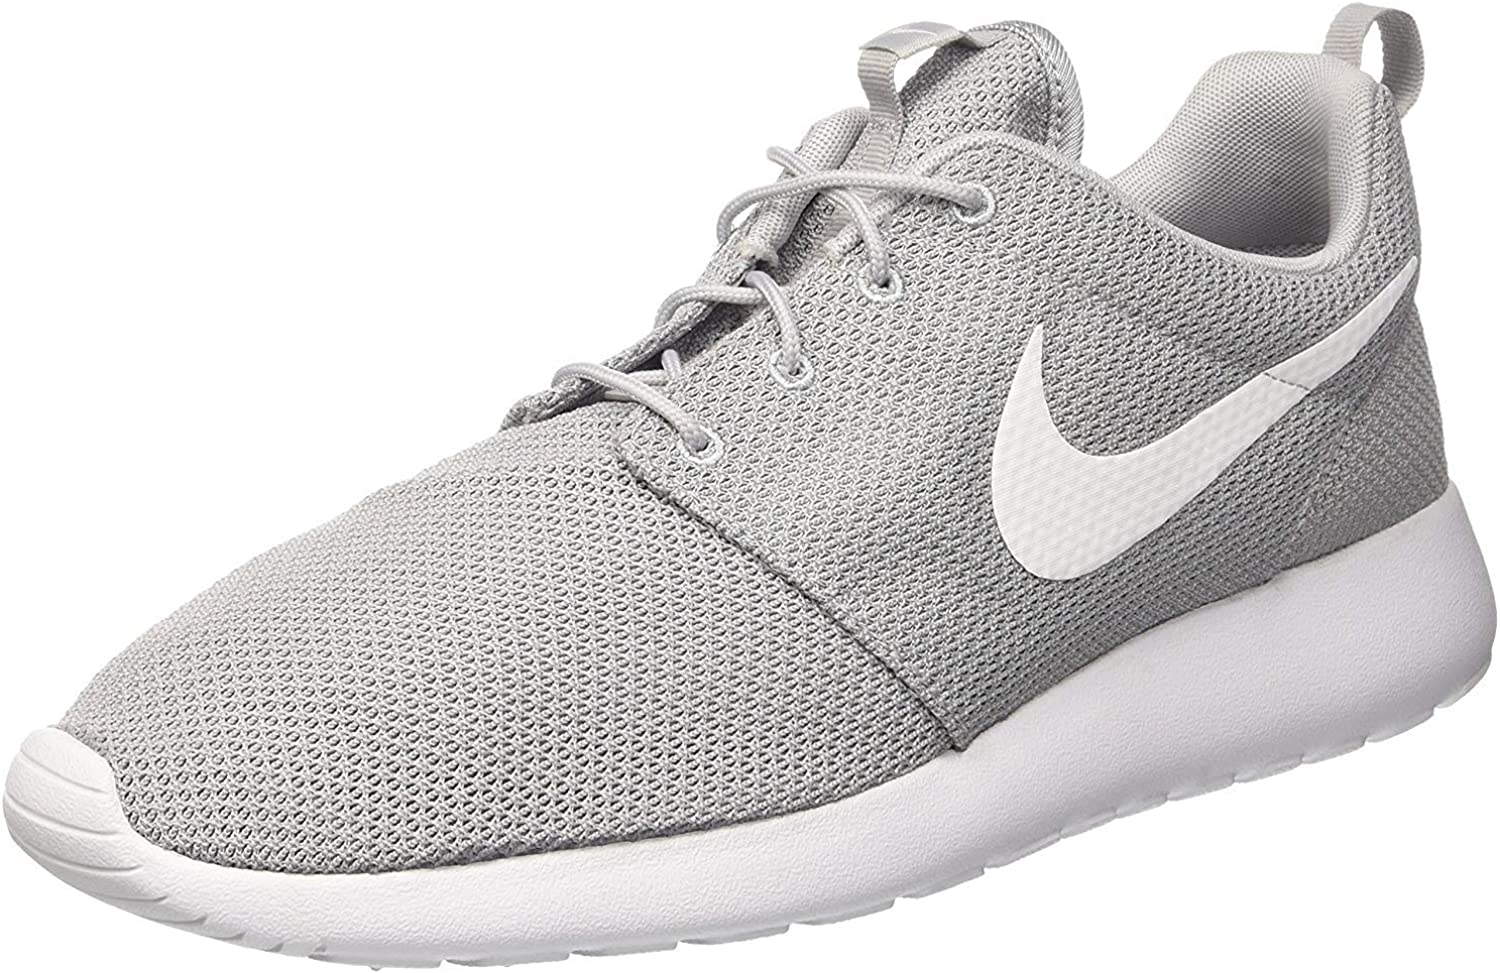 Amazon.com: Nike Roshe Run - Zapatillas para hombre: NIKE: Shoes